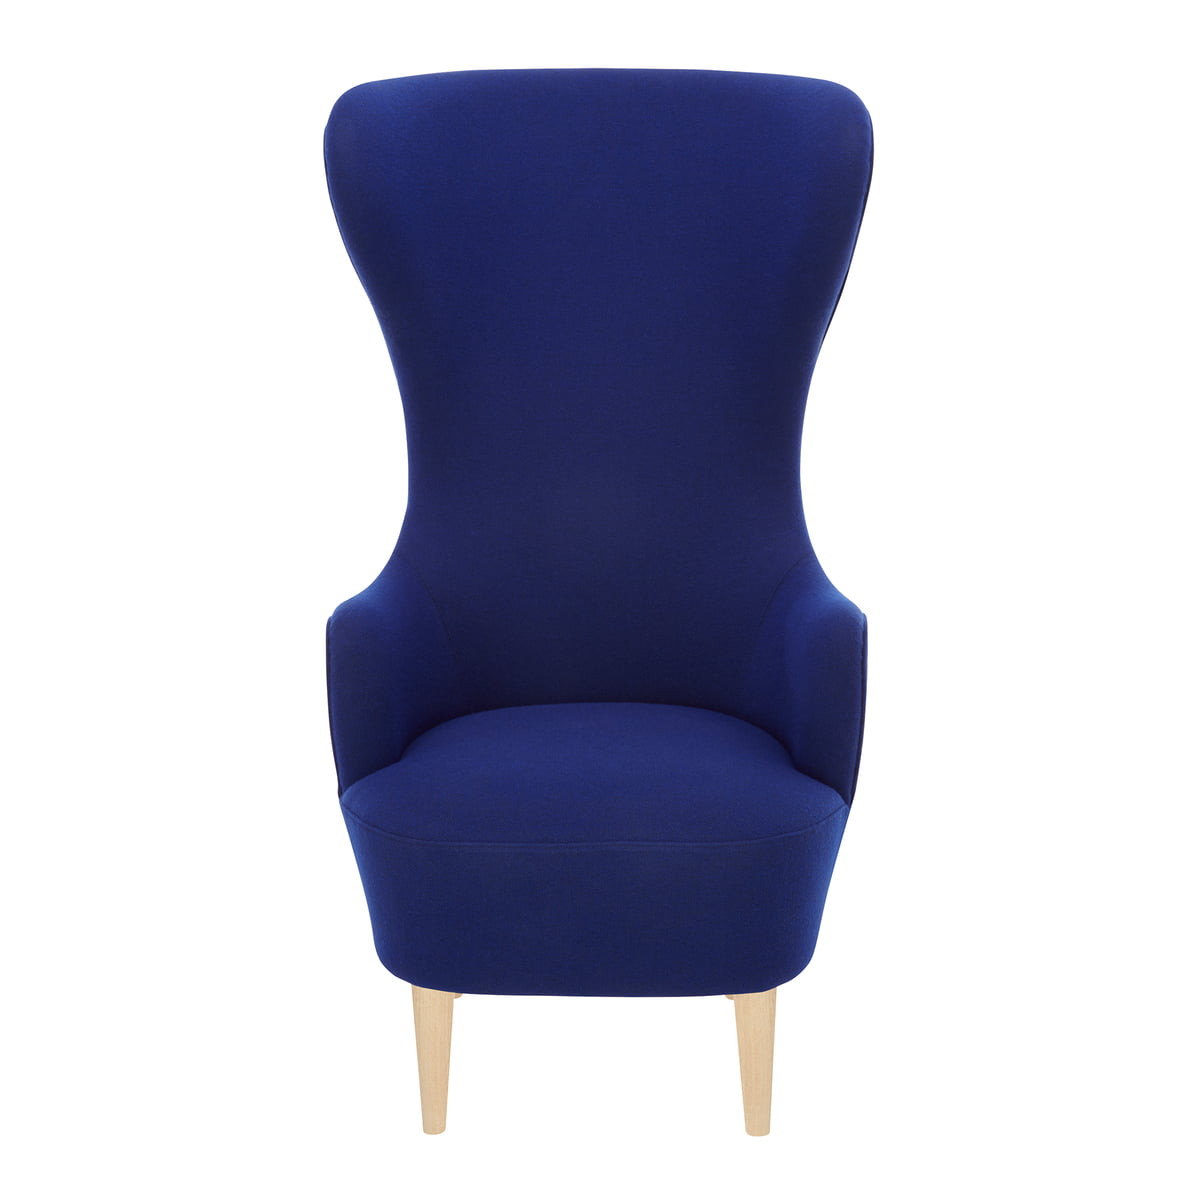 Wingback chair tom dixon - Wingback Chair By Tom Dixon In Oak With Upholstery In Blue